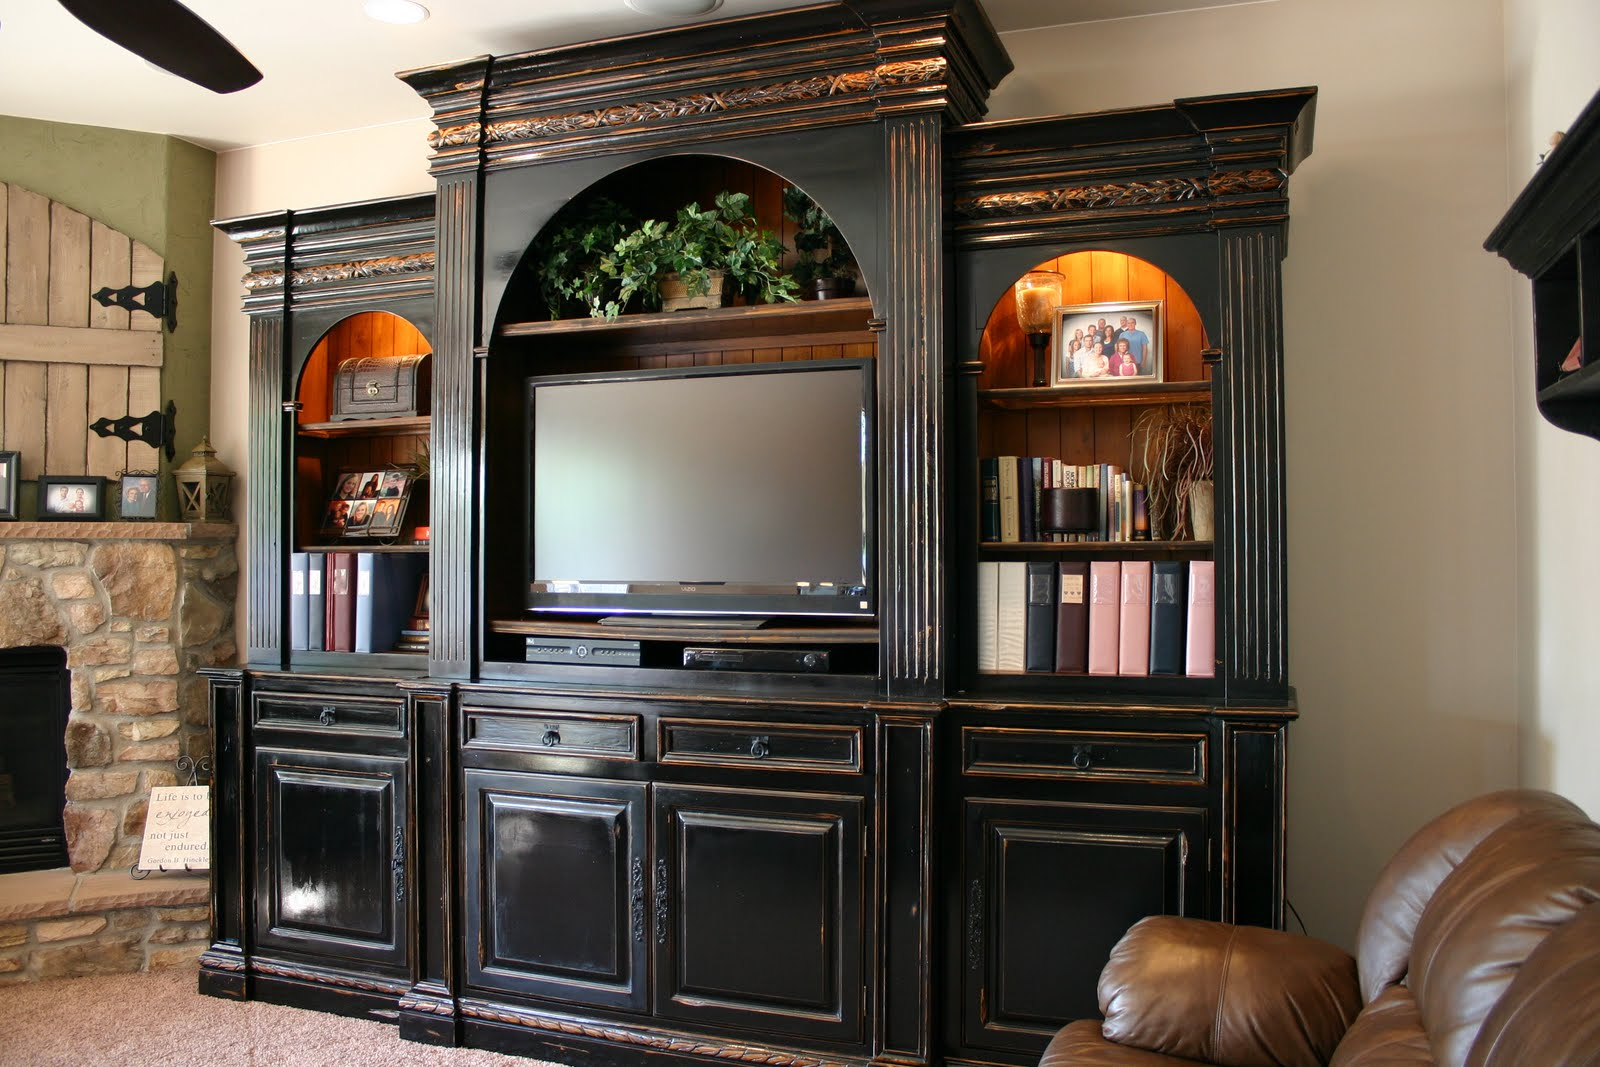 Entertainment Centers Doubletake Decor: Entertainment Center